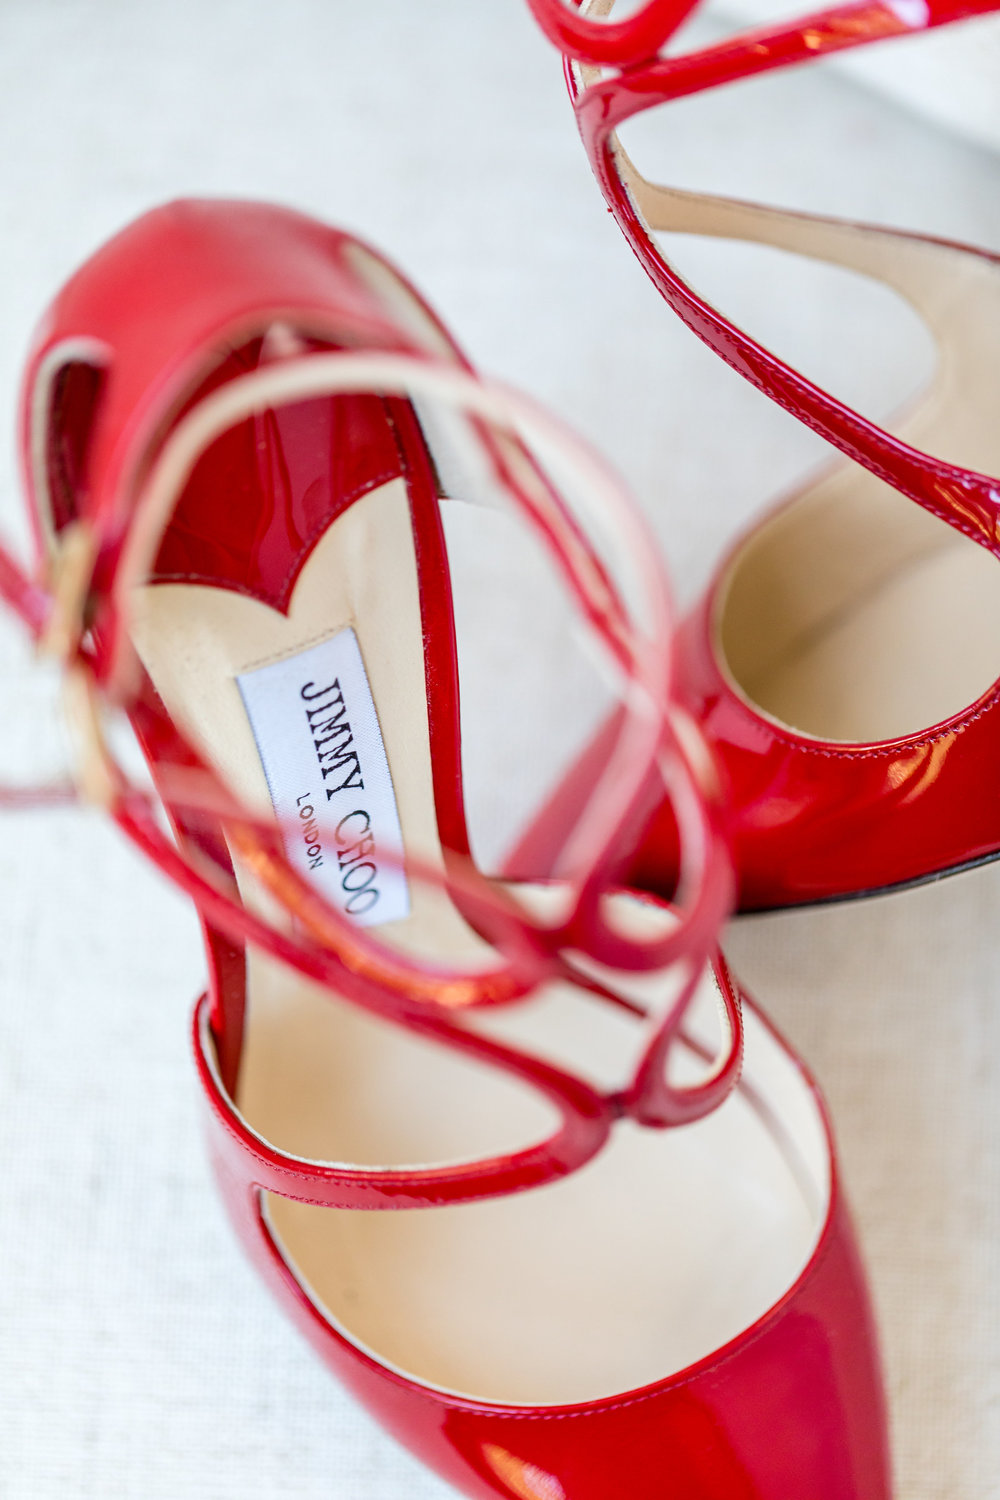 Jimmy Choo High Heel Shoes  Wedding Photography.jpg